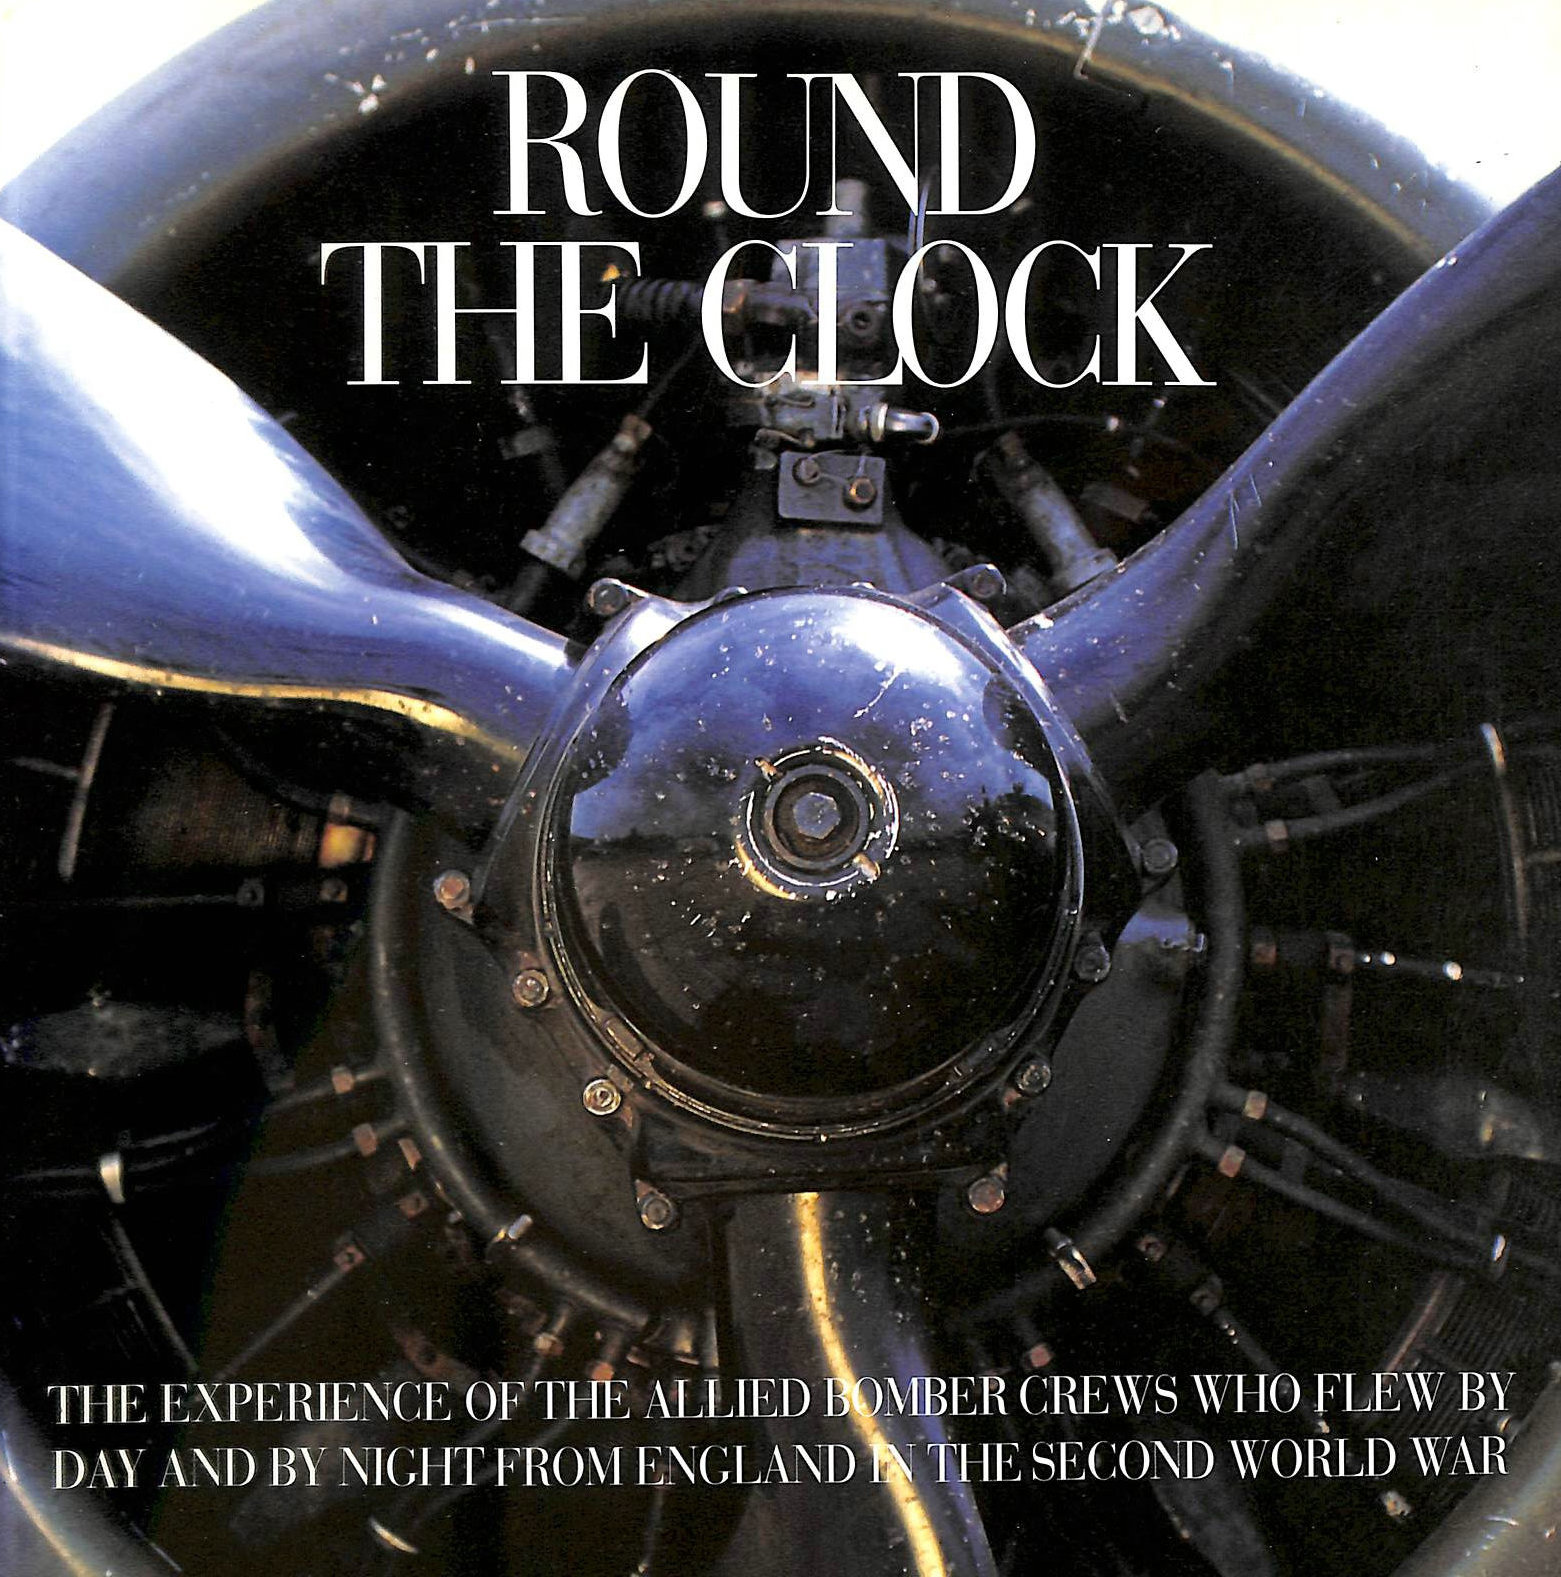 Image for Round the Clock: The Experience of the Allied Bomber Crews Who Flew by Day and Night from England in the Second World War